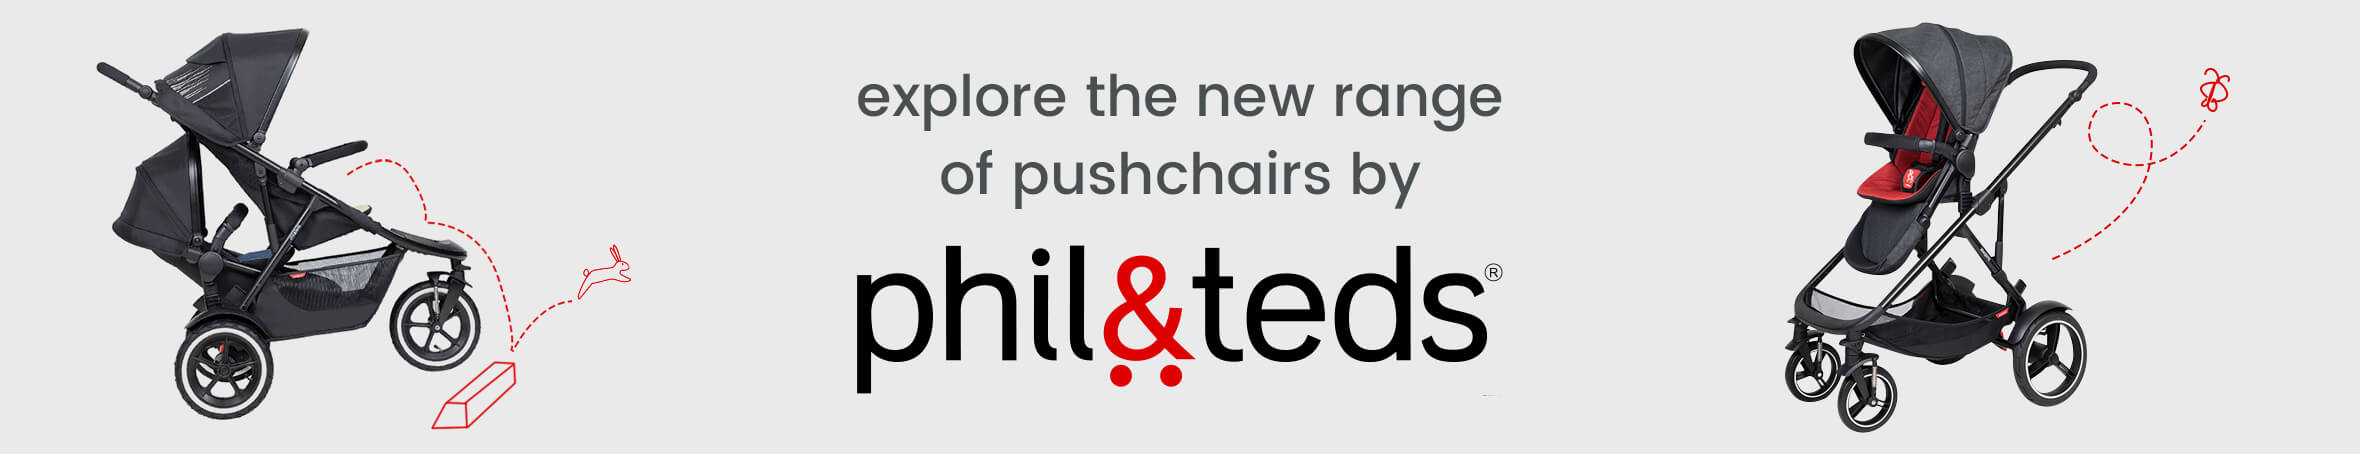 explore the new range of pushchairs by Phil & Teds